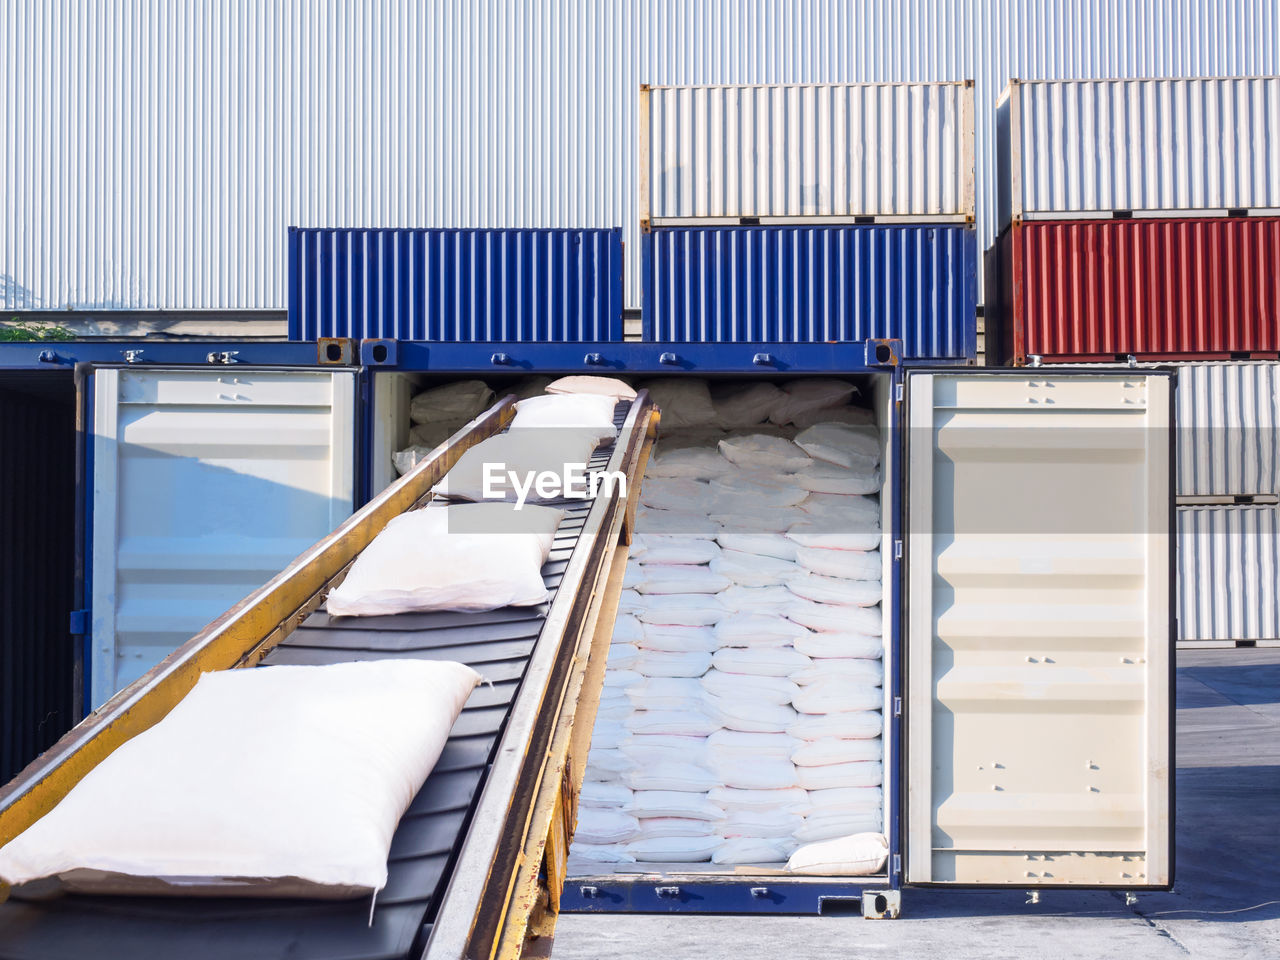 Sacks On Conveyor Belt Against Cargo Containers